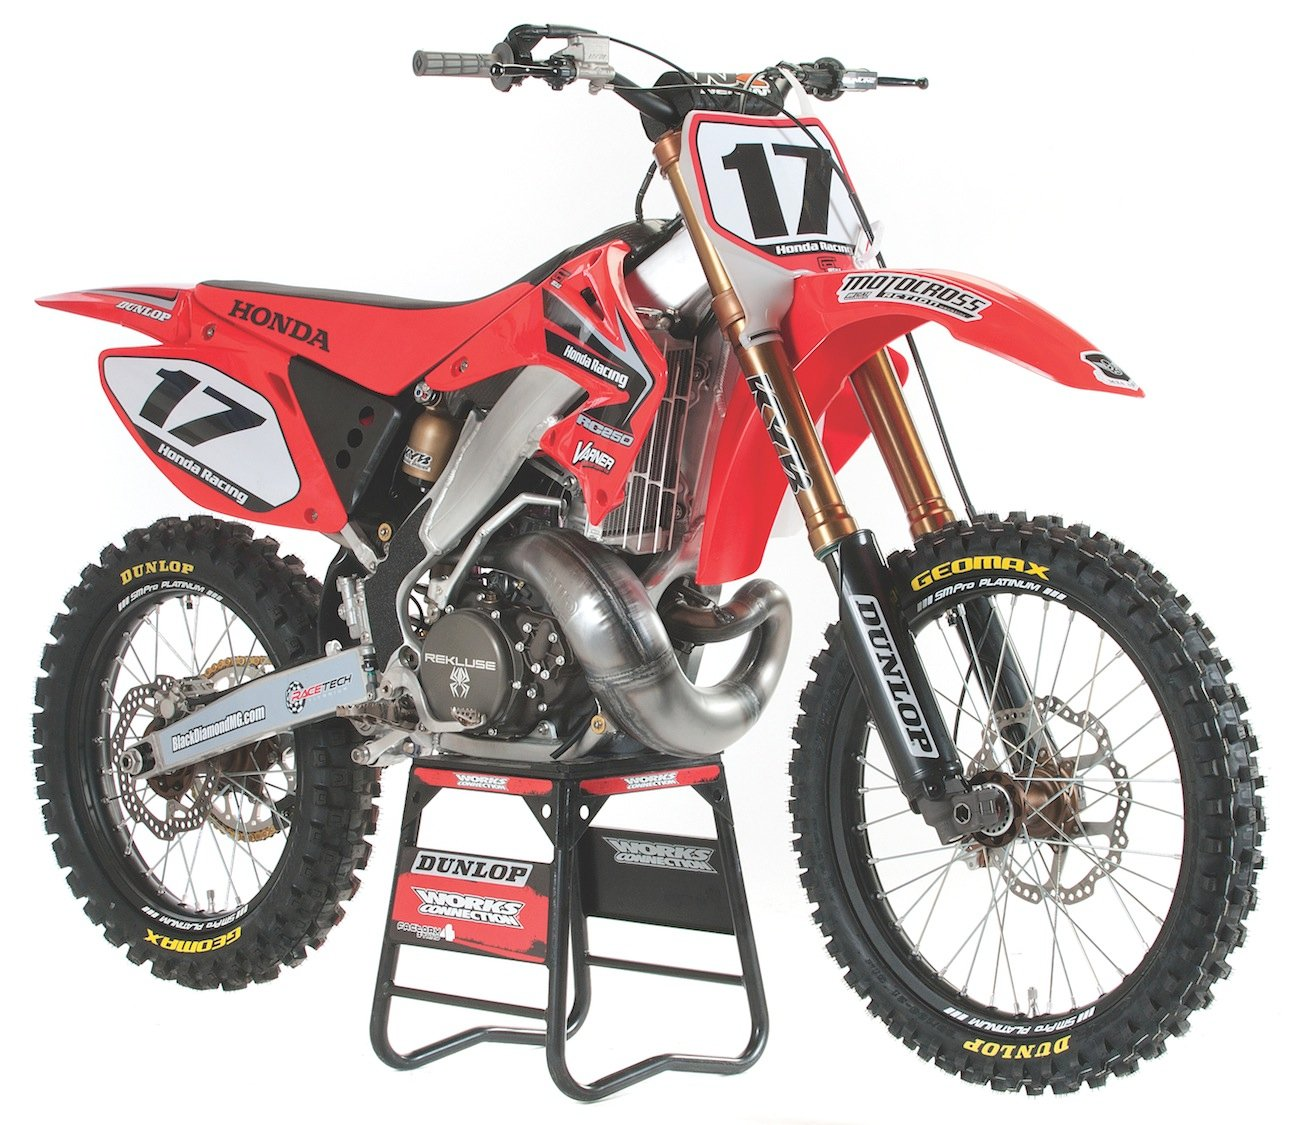 ULTRA-TRICK, 3-SPEED HONDA CR250 TWO-STROKE | Motocross